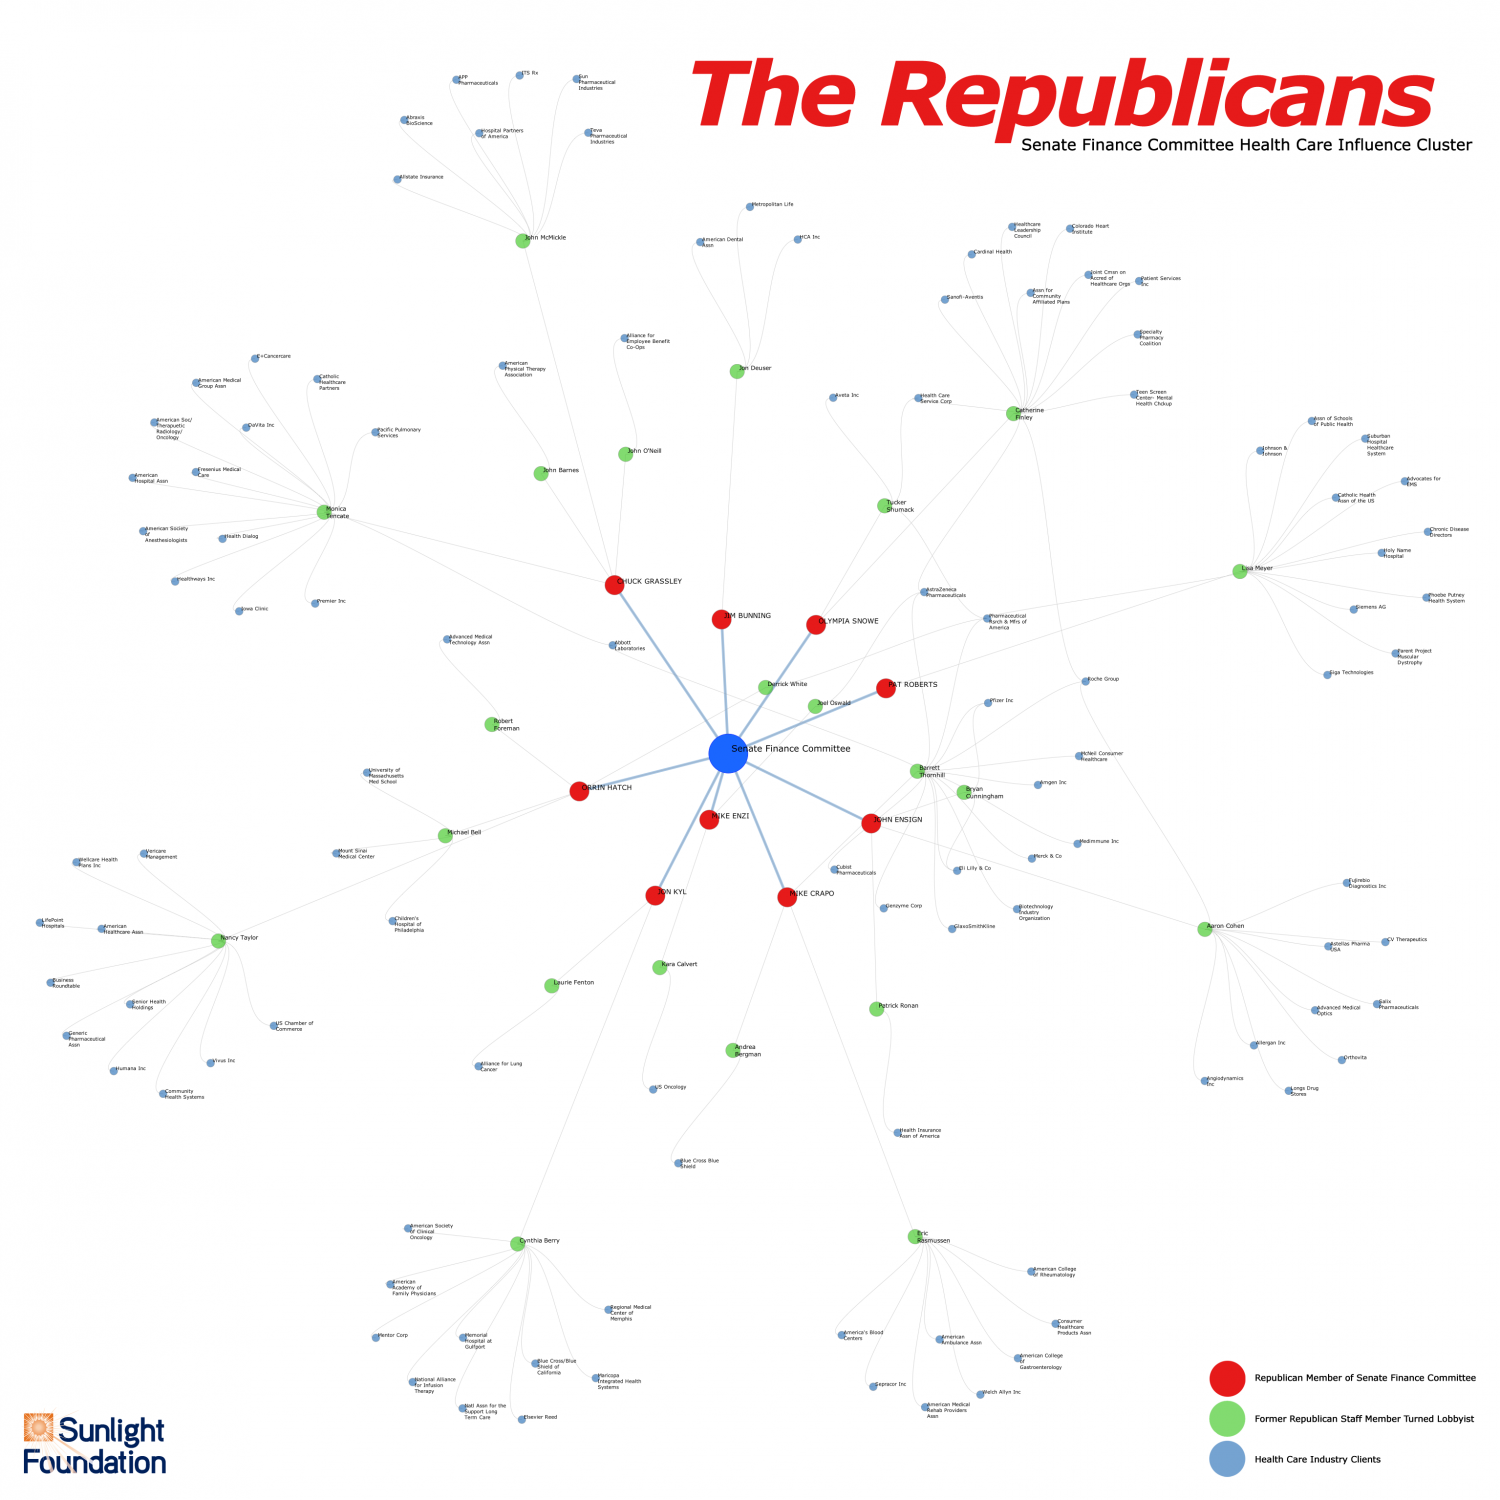 Senate Finance Committee Health Care Influence Cluster Infographic